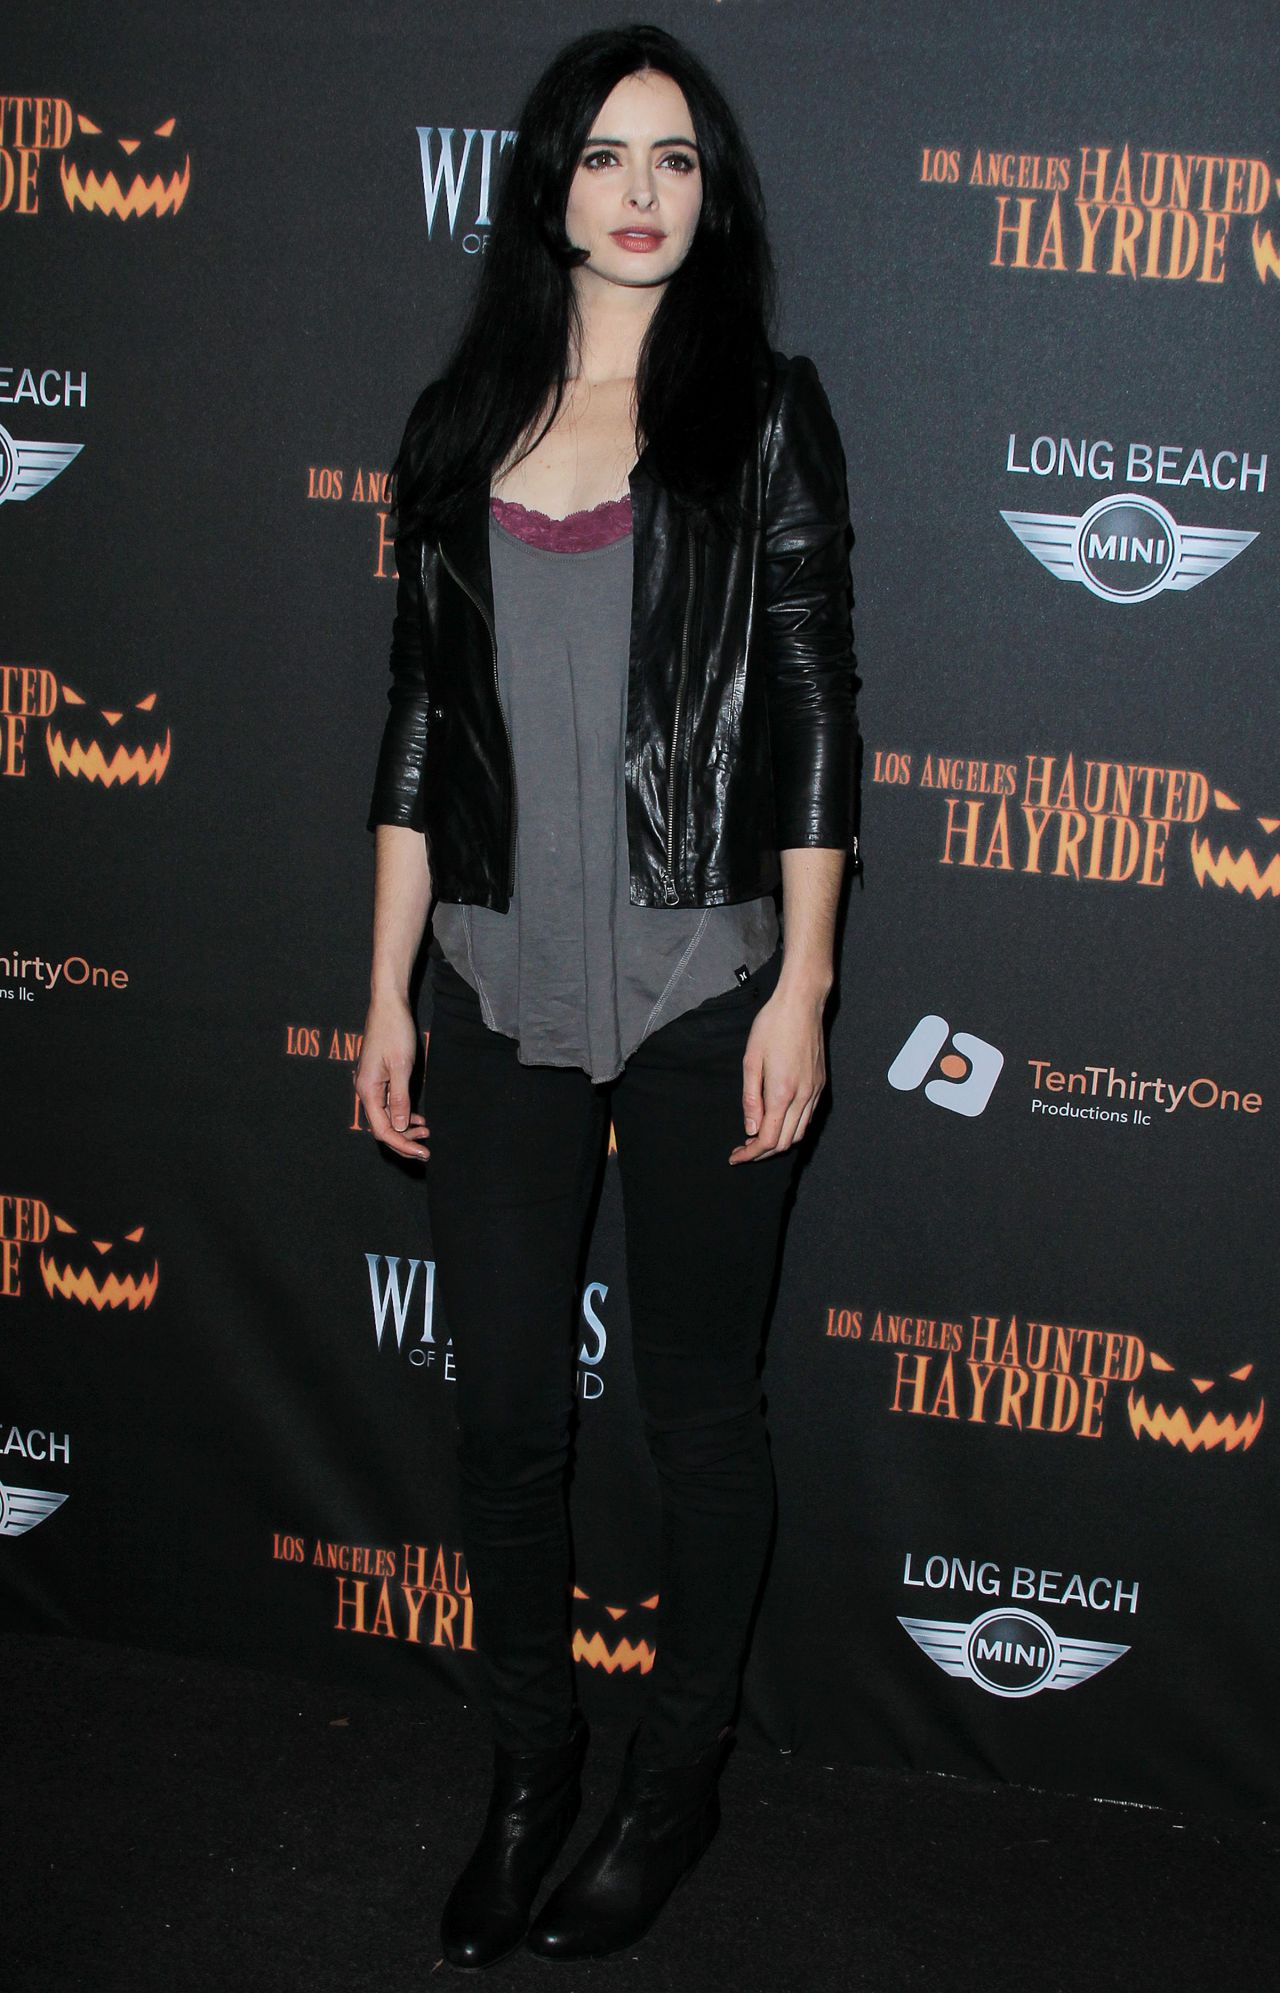 Krysten Ritter at 5th Annual Los Angeles Haunted Hayride in Los Angeles